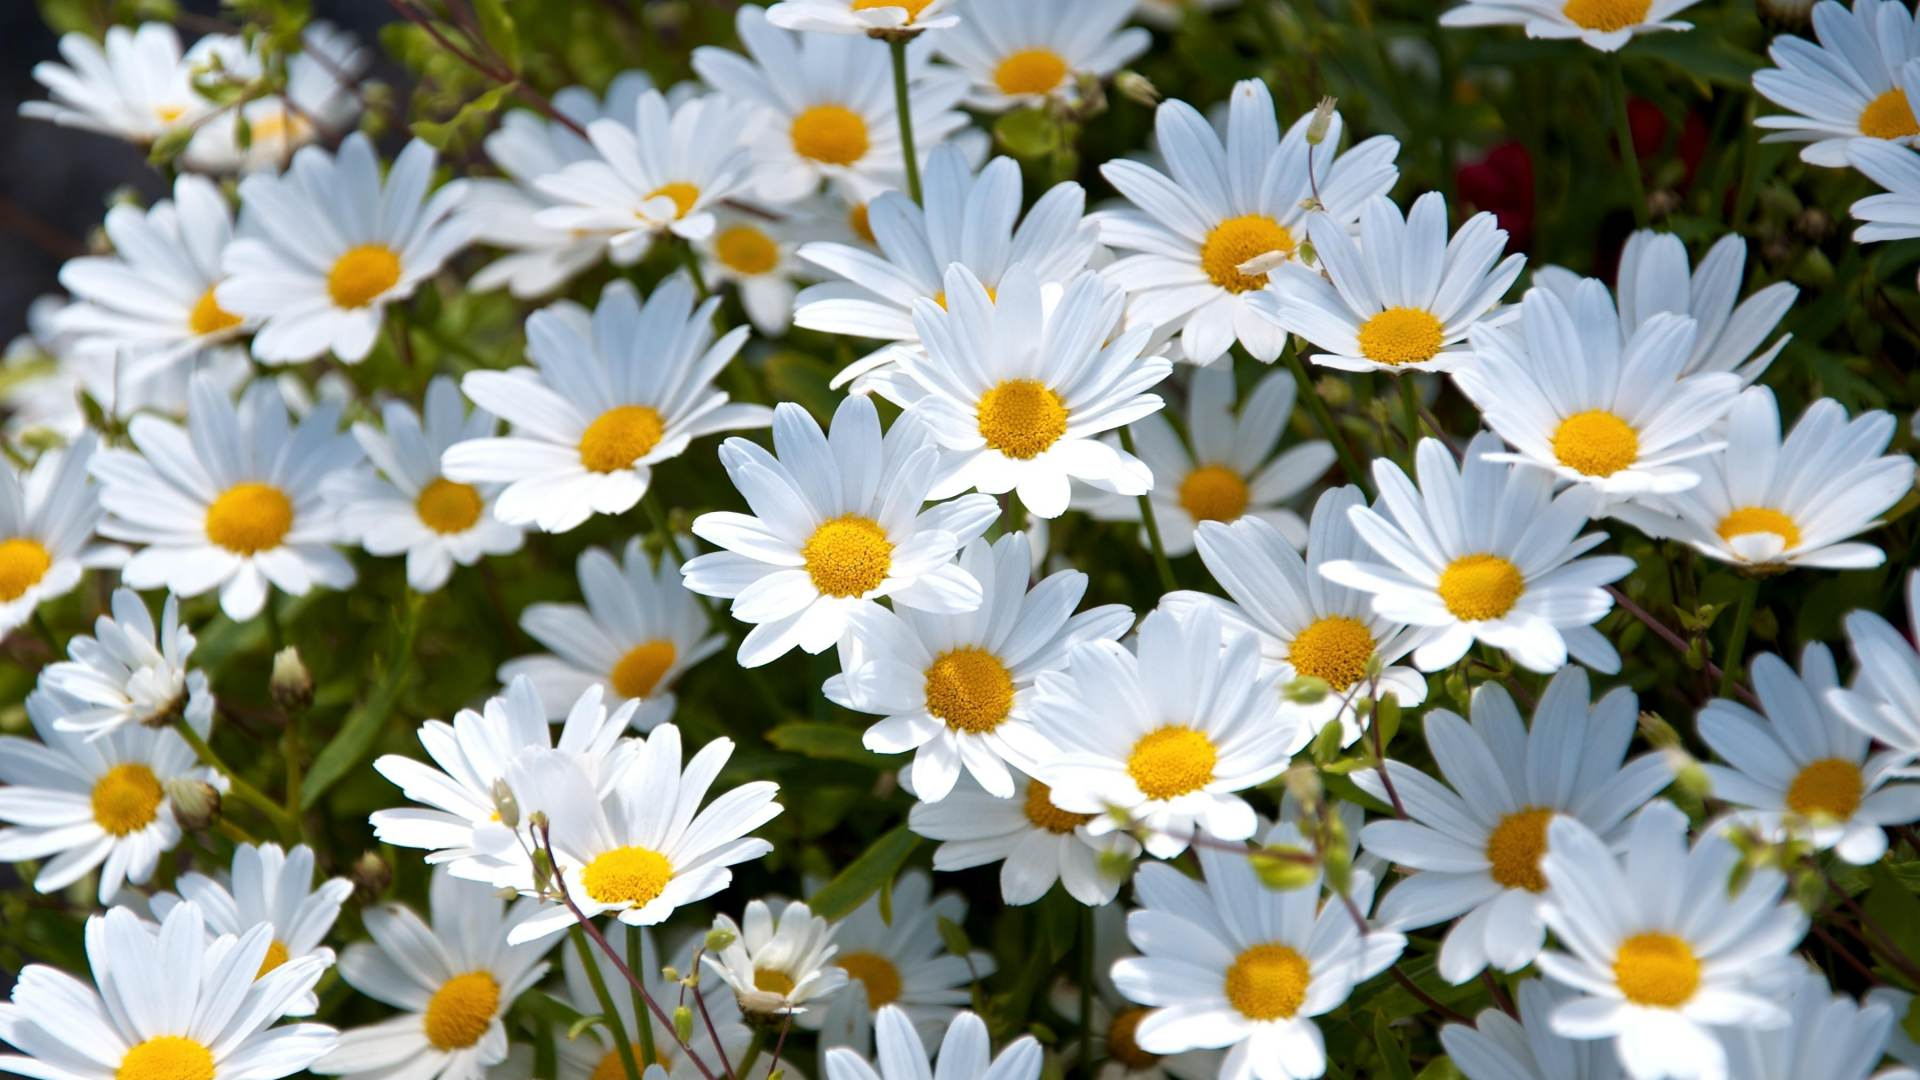 daisy backgrounds, wallpapers, images, pictures  design, Beautiful flower